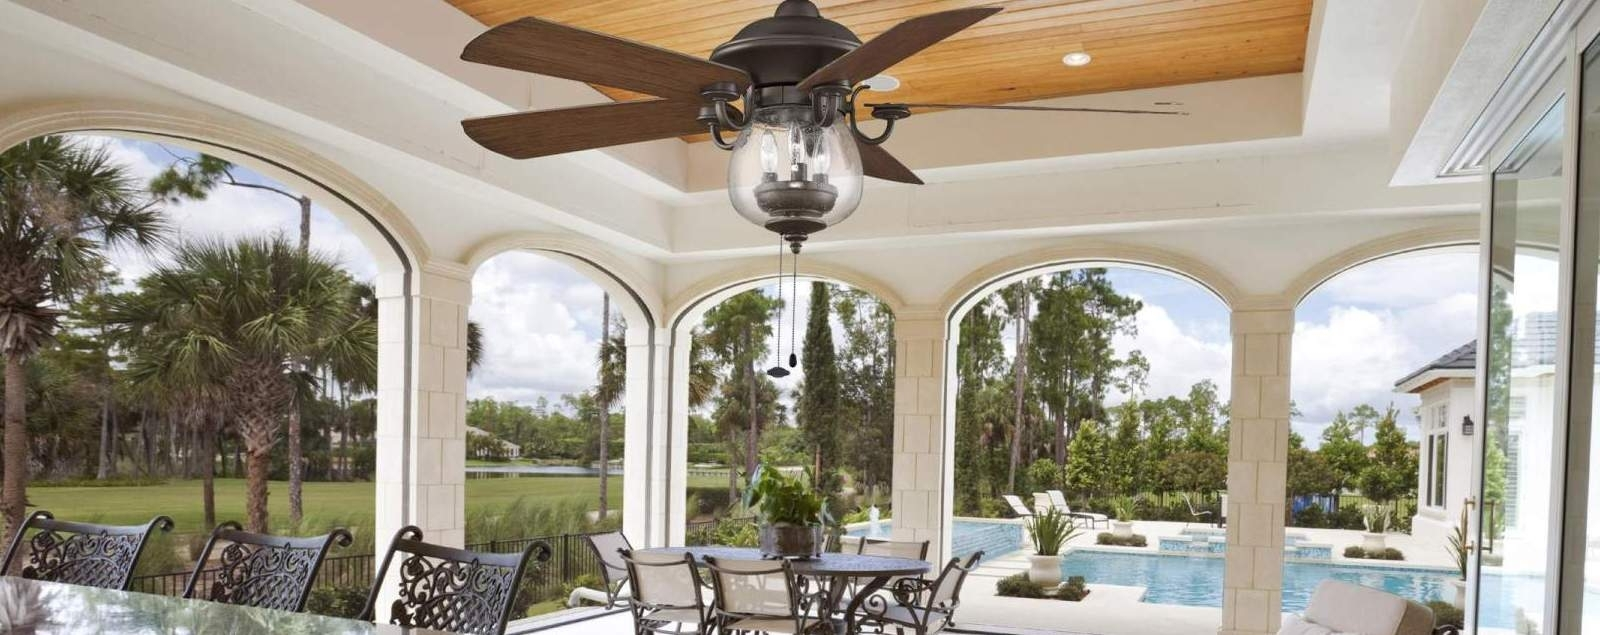 Well Liked Outdoor Ceiling Fans For Wet Areas With Outdoor Ceiling Fans – Shop Wet, Dry, And Damp Rated Outdoor Fans (View 19 of 20)